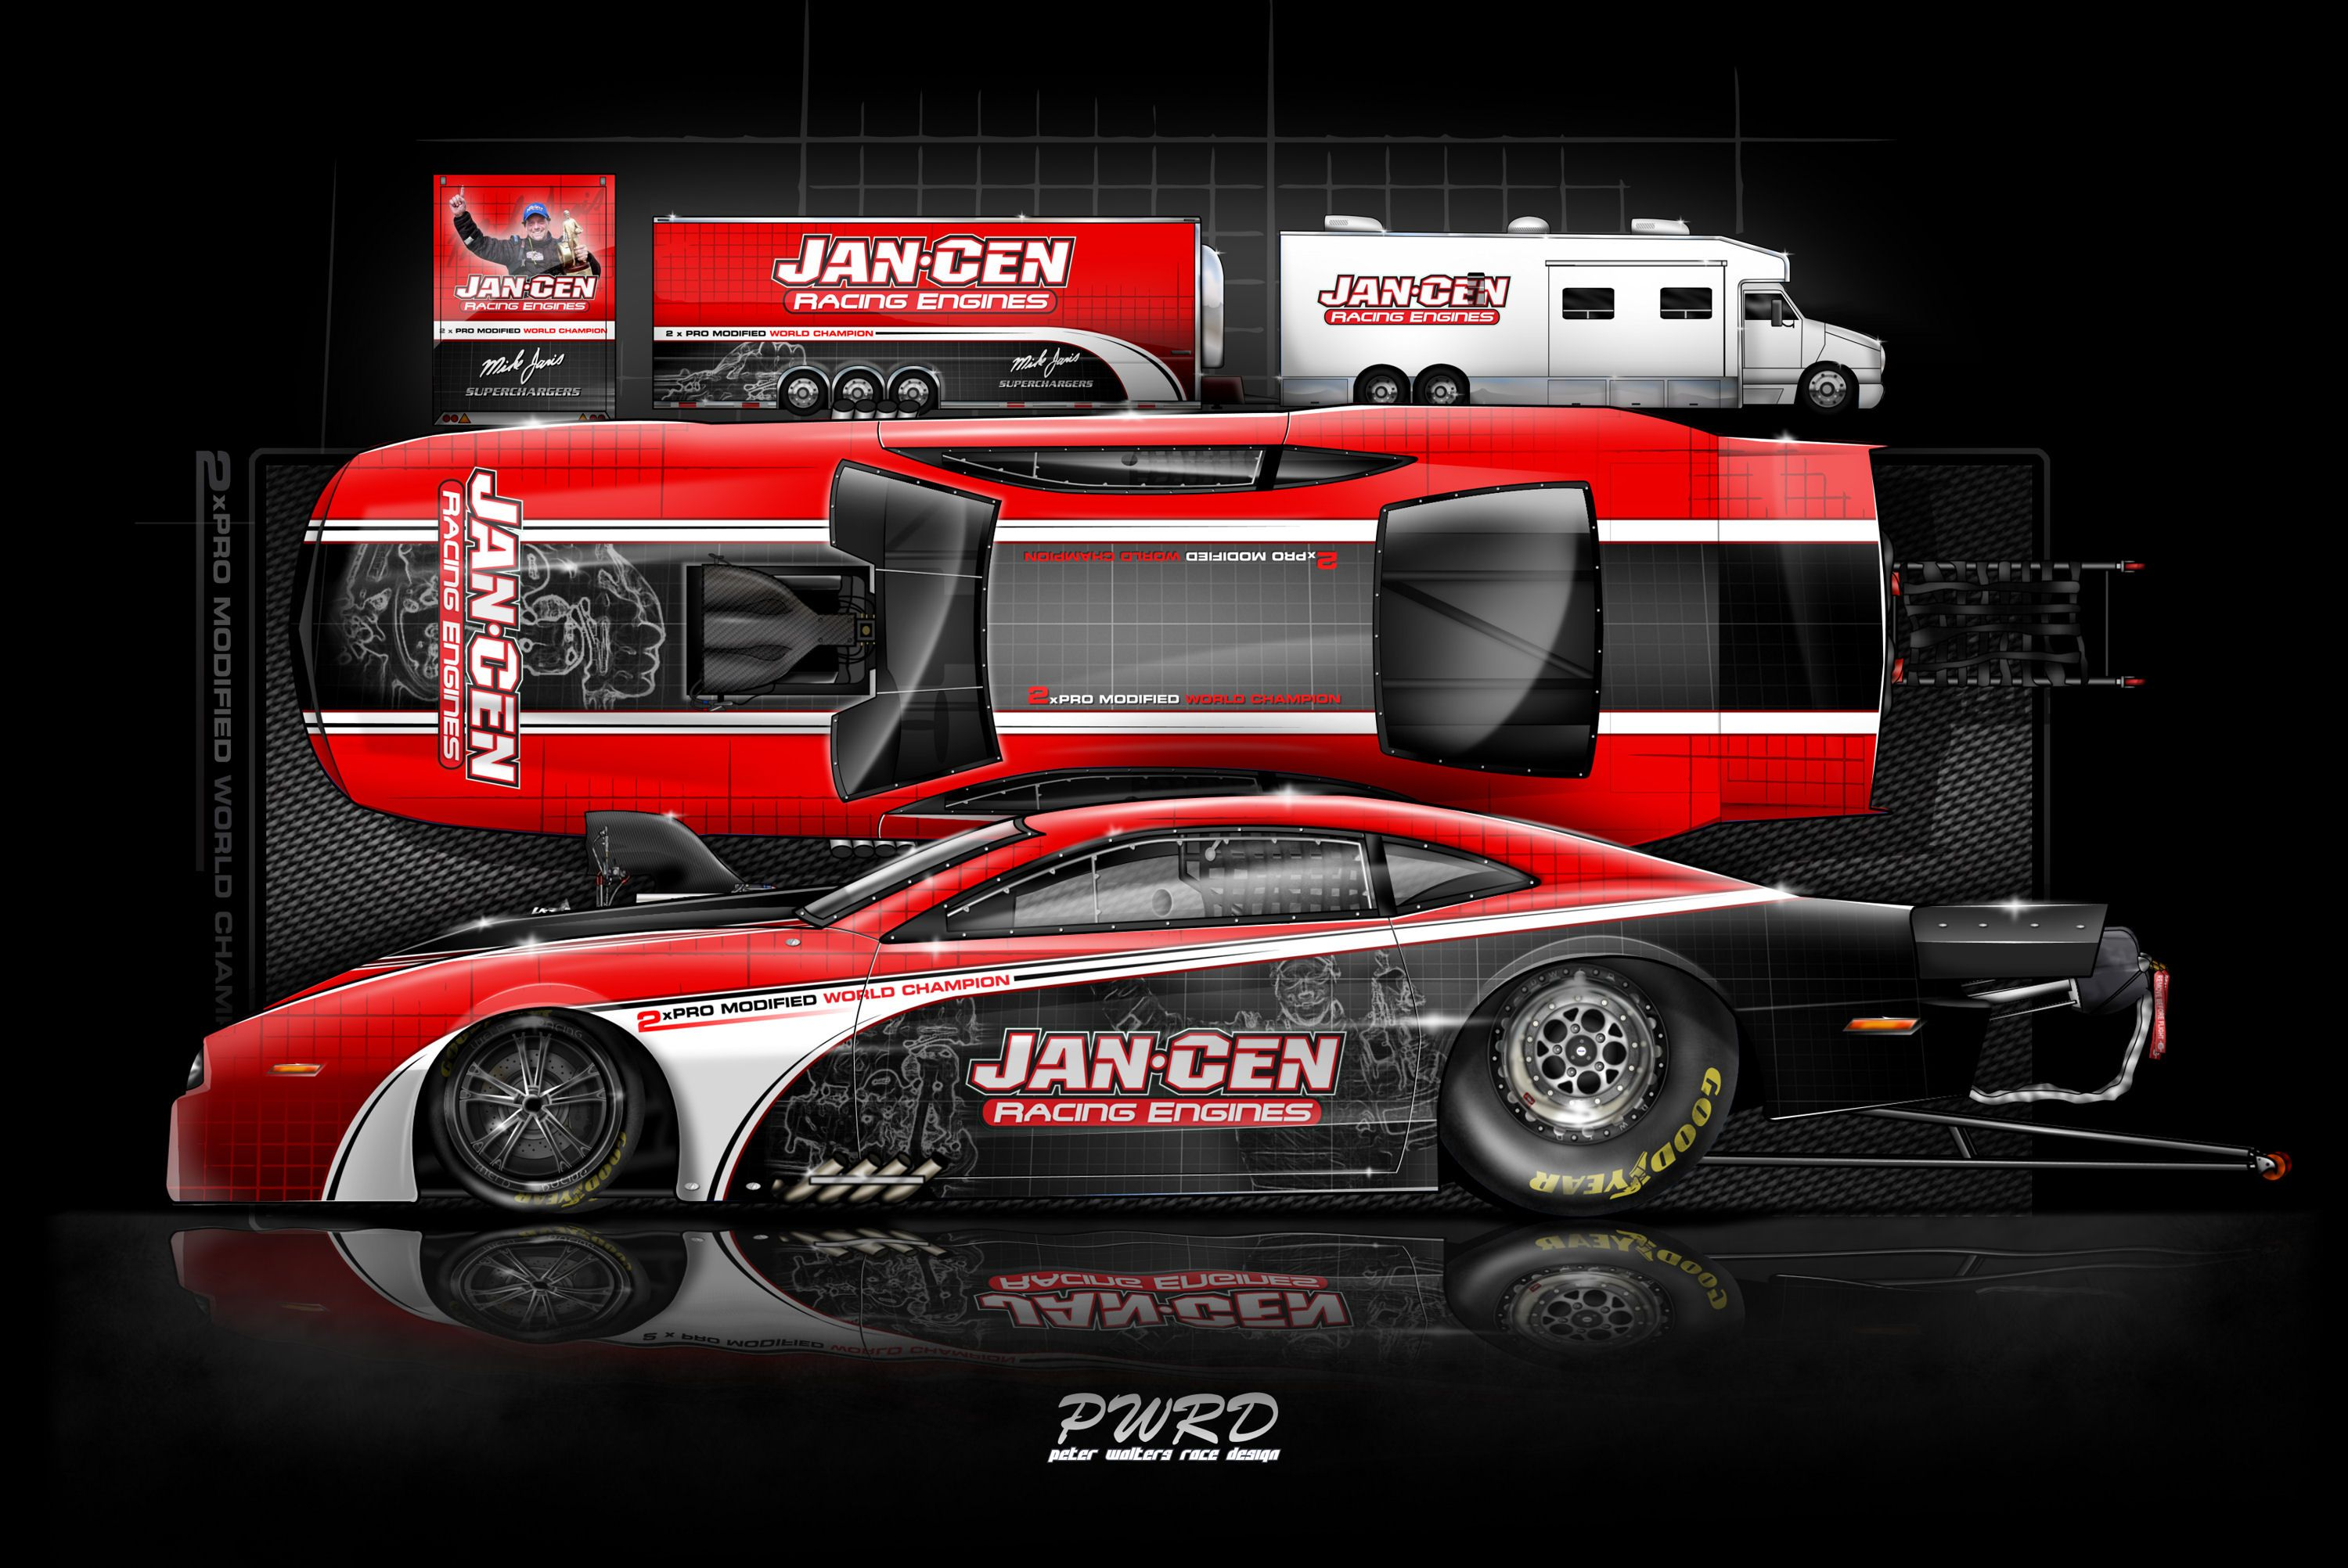 You are looking at latest design for the JanCen Racing